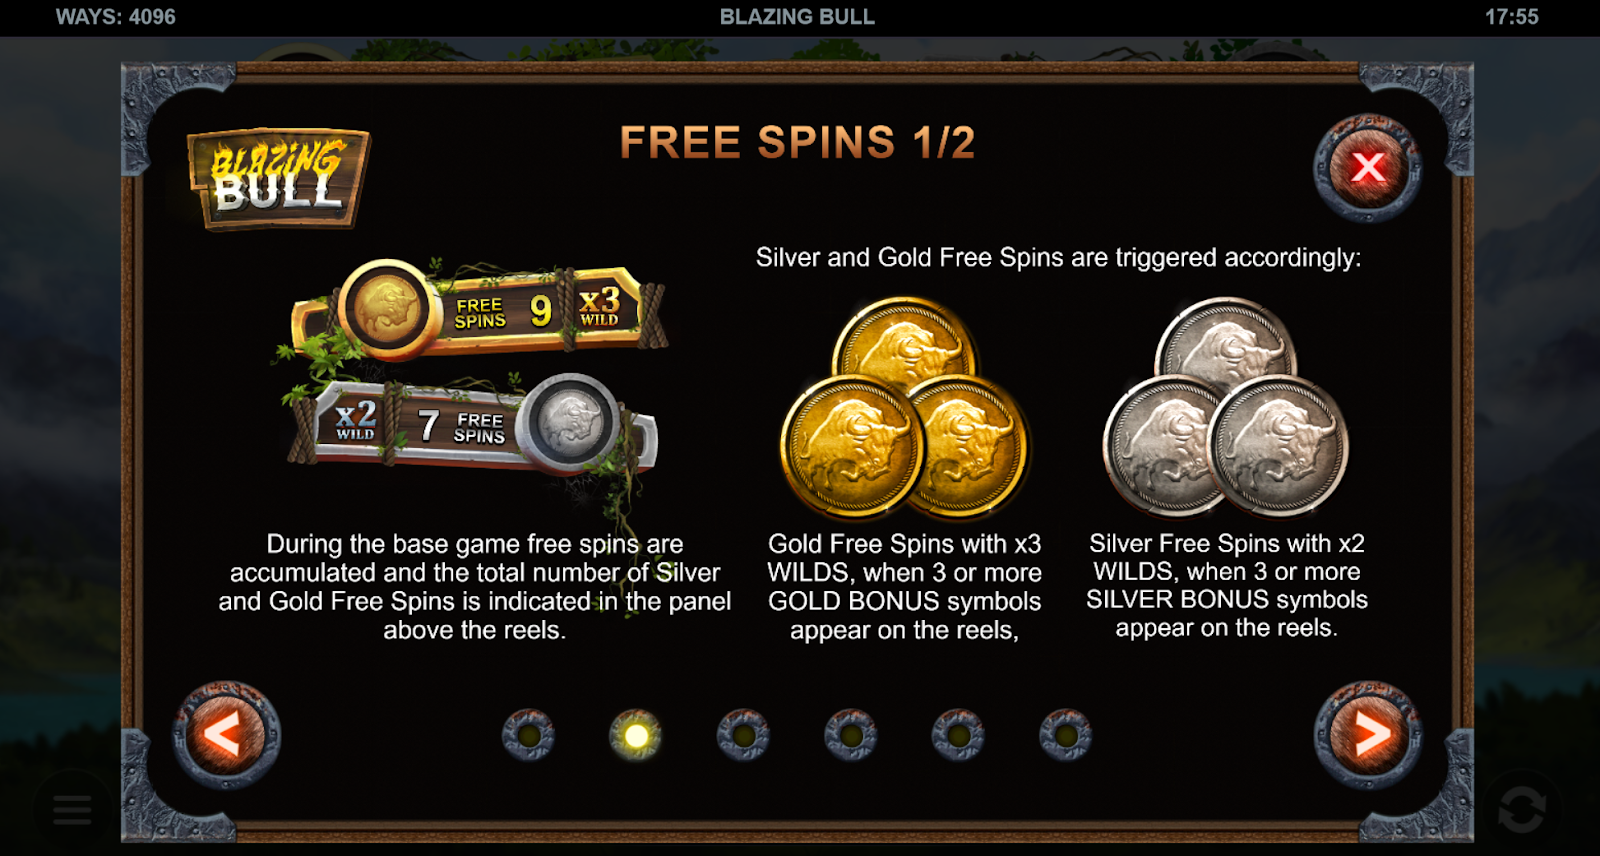 Blazing Bull a leading video slot game that you can play at Casoola Casino